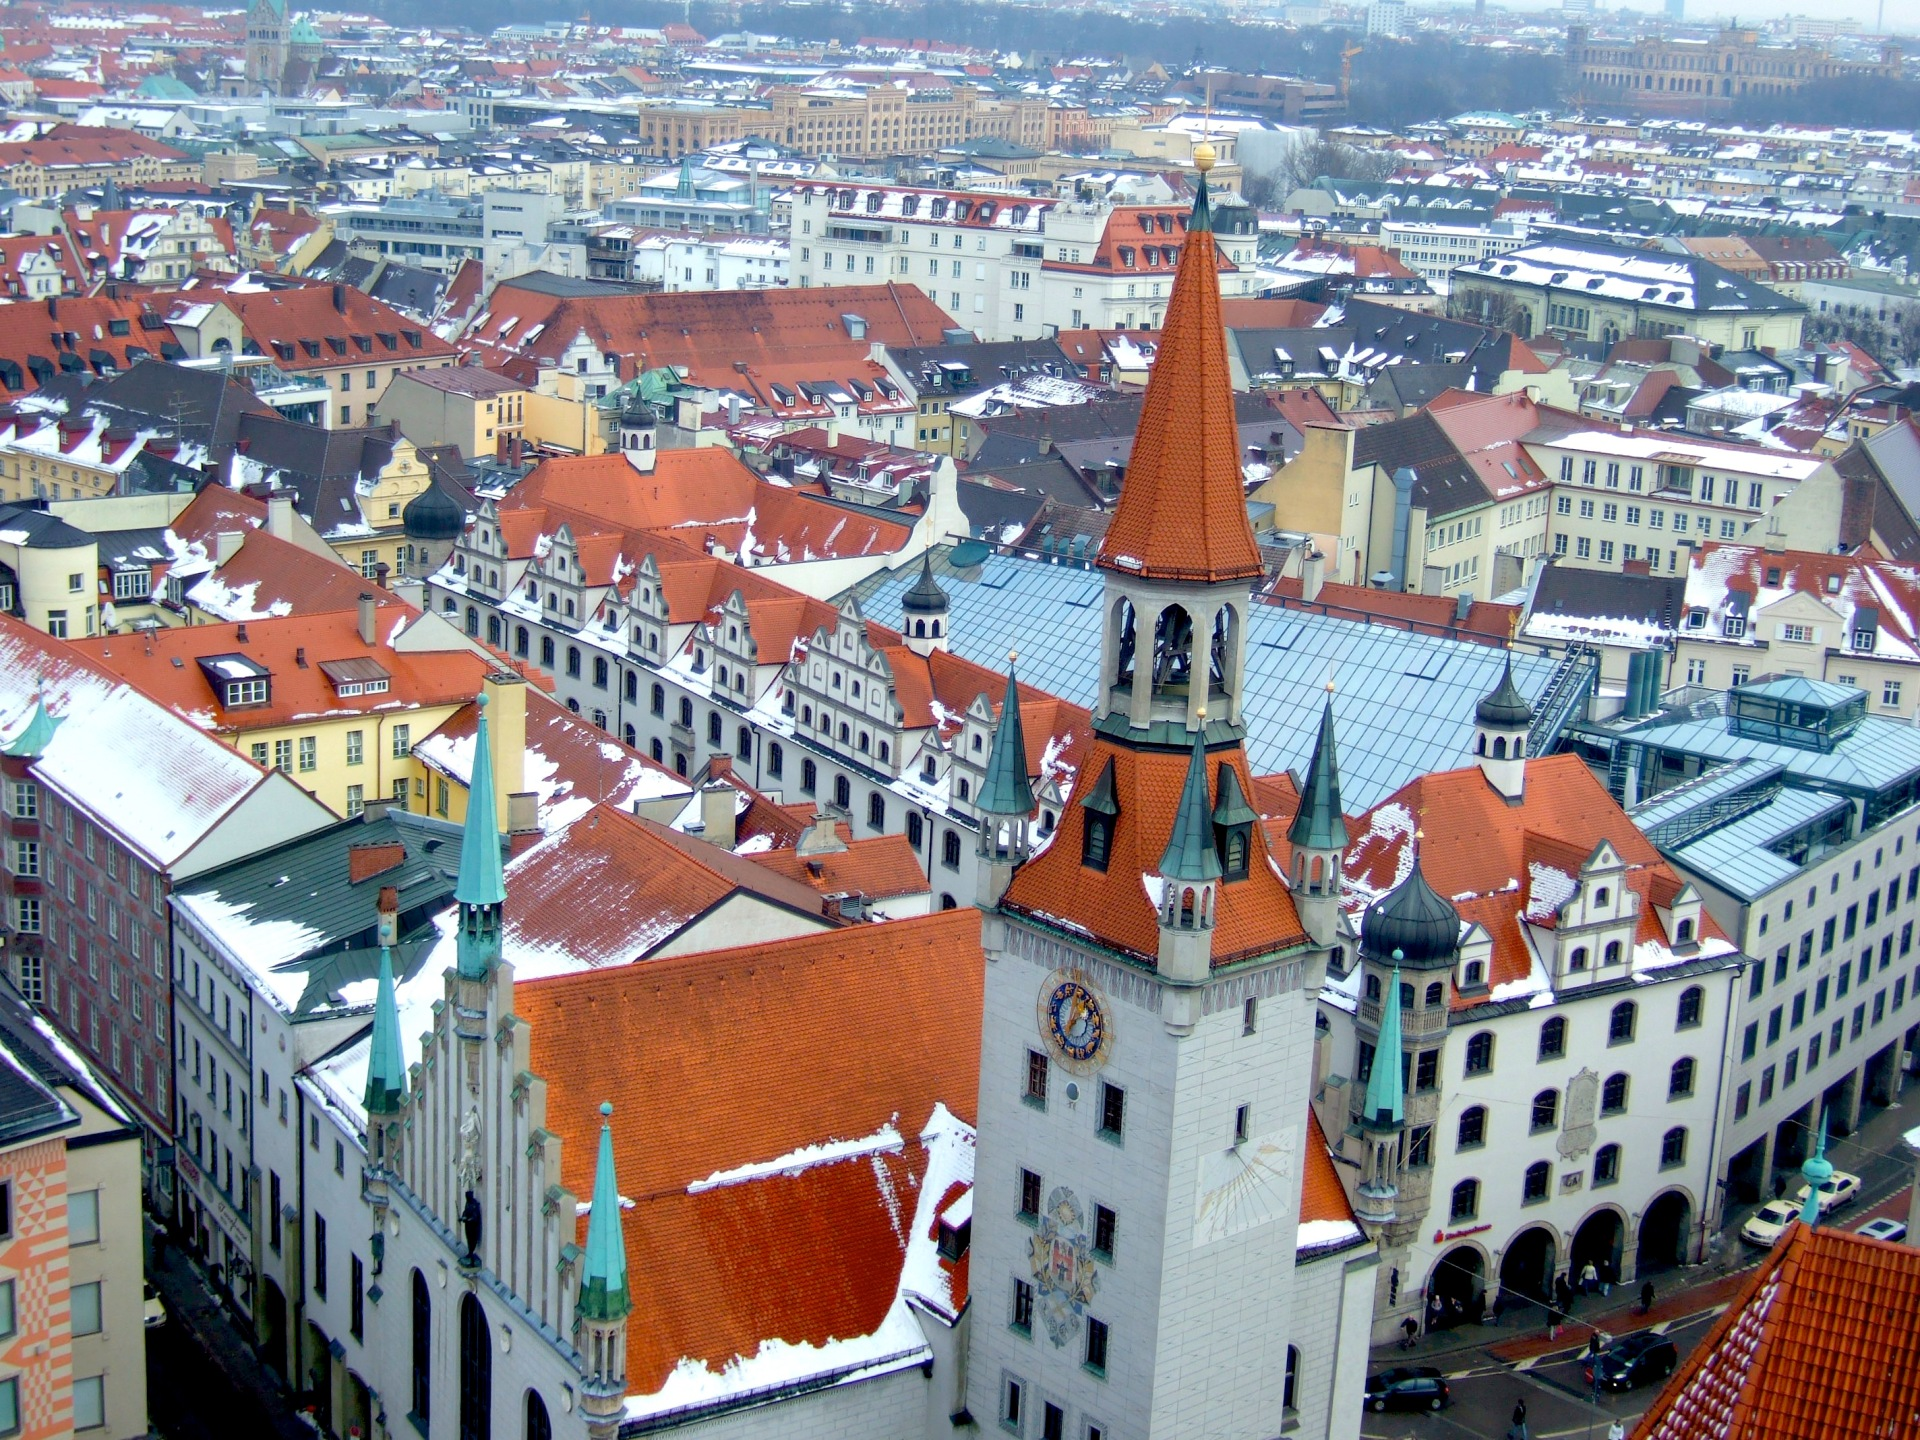 View from St Peter's Church in Munich